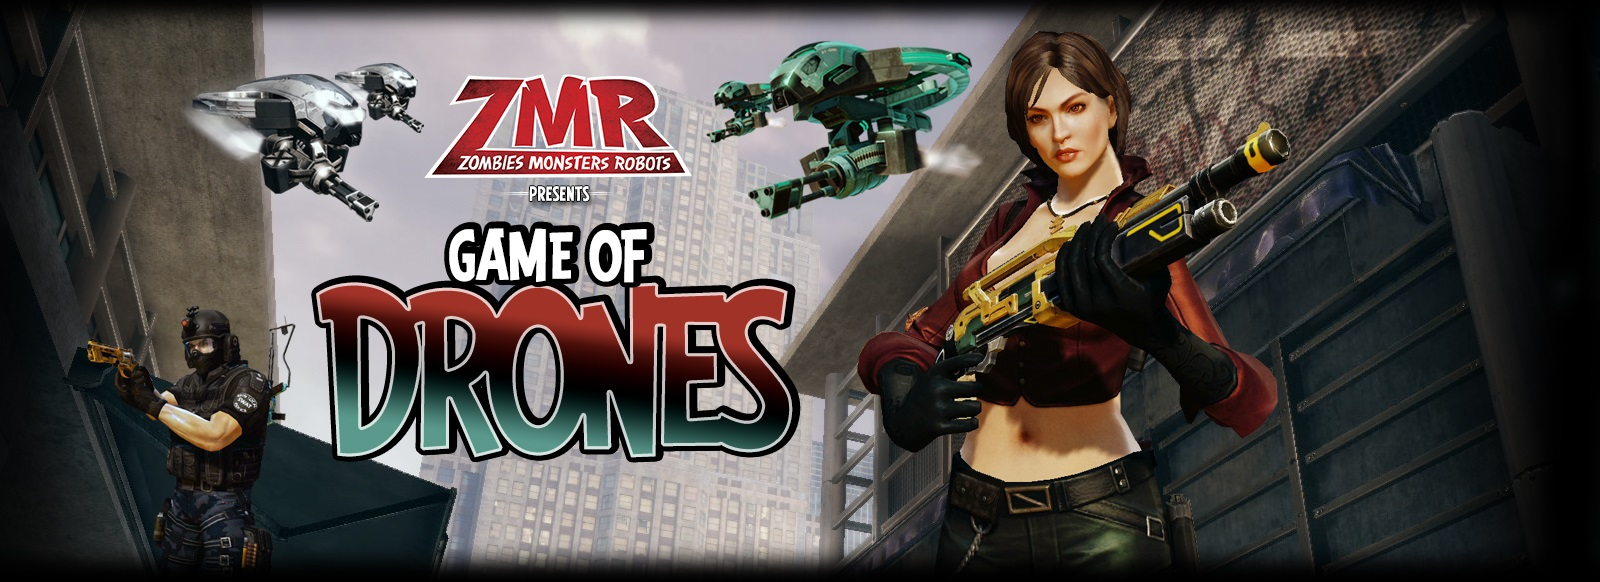 Zombies Monsters Robots Game of Drones Update Takes to the Skies Banner